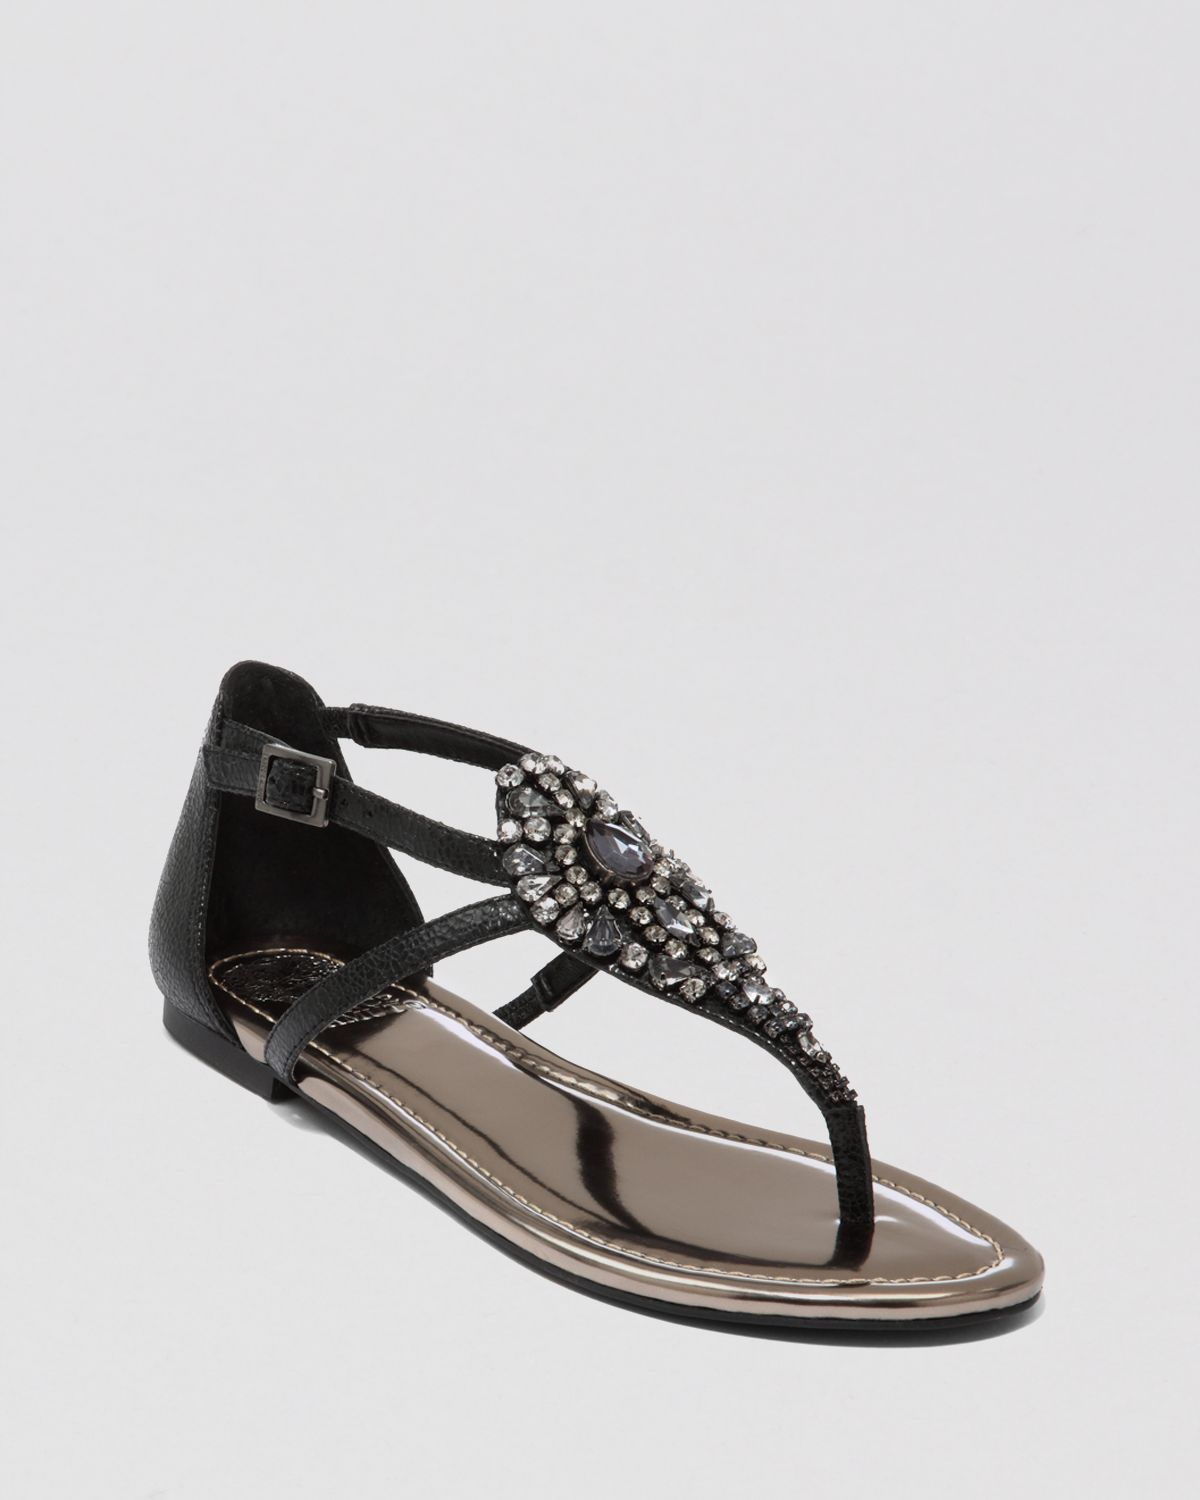 Vince Camuto Sandals Macalia Jeweled Flat In Black | Lyst